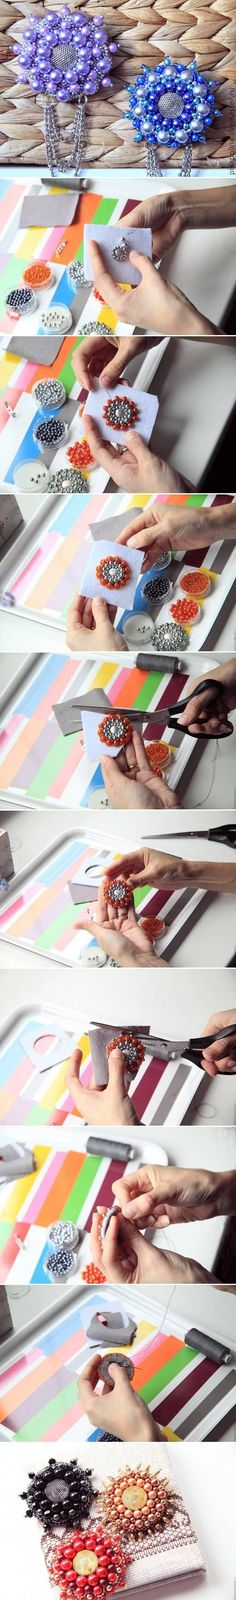 DIY Beads Flower Brooch